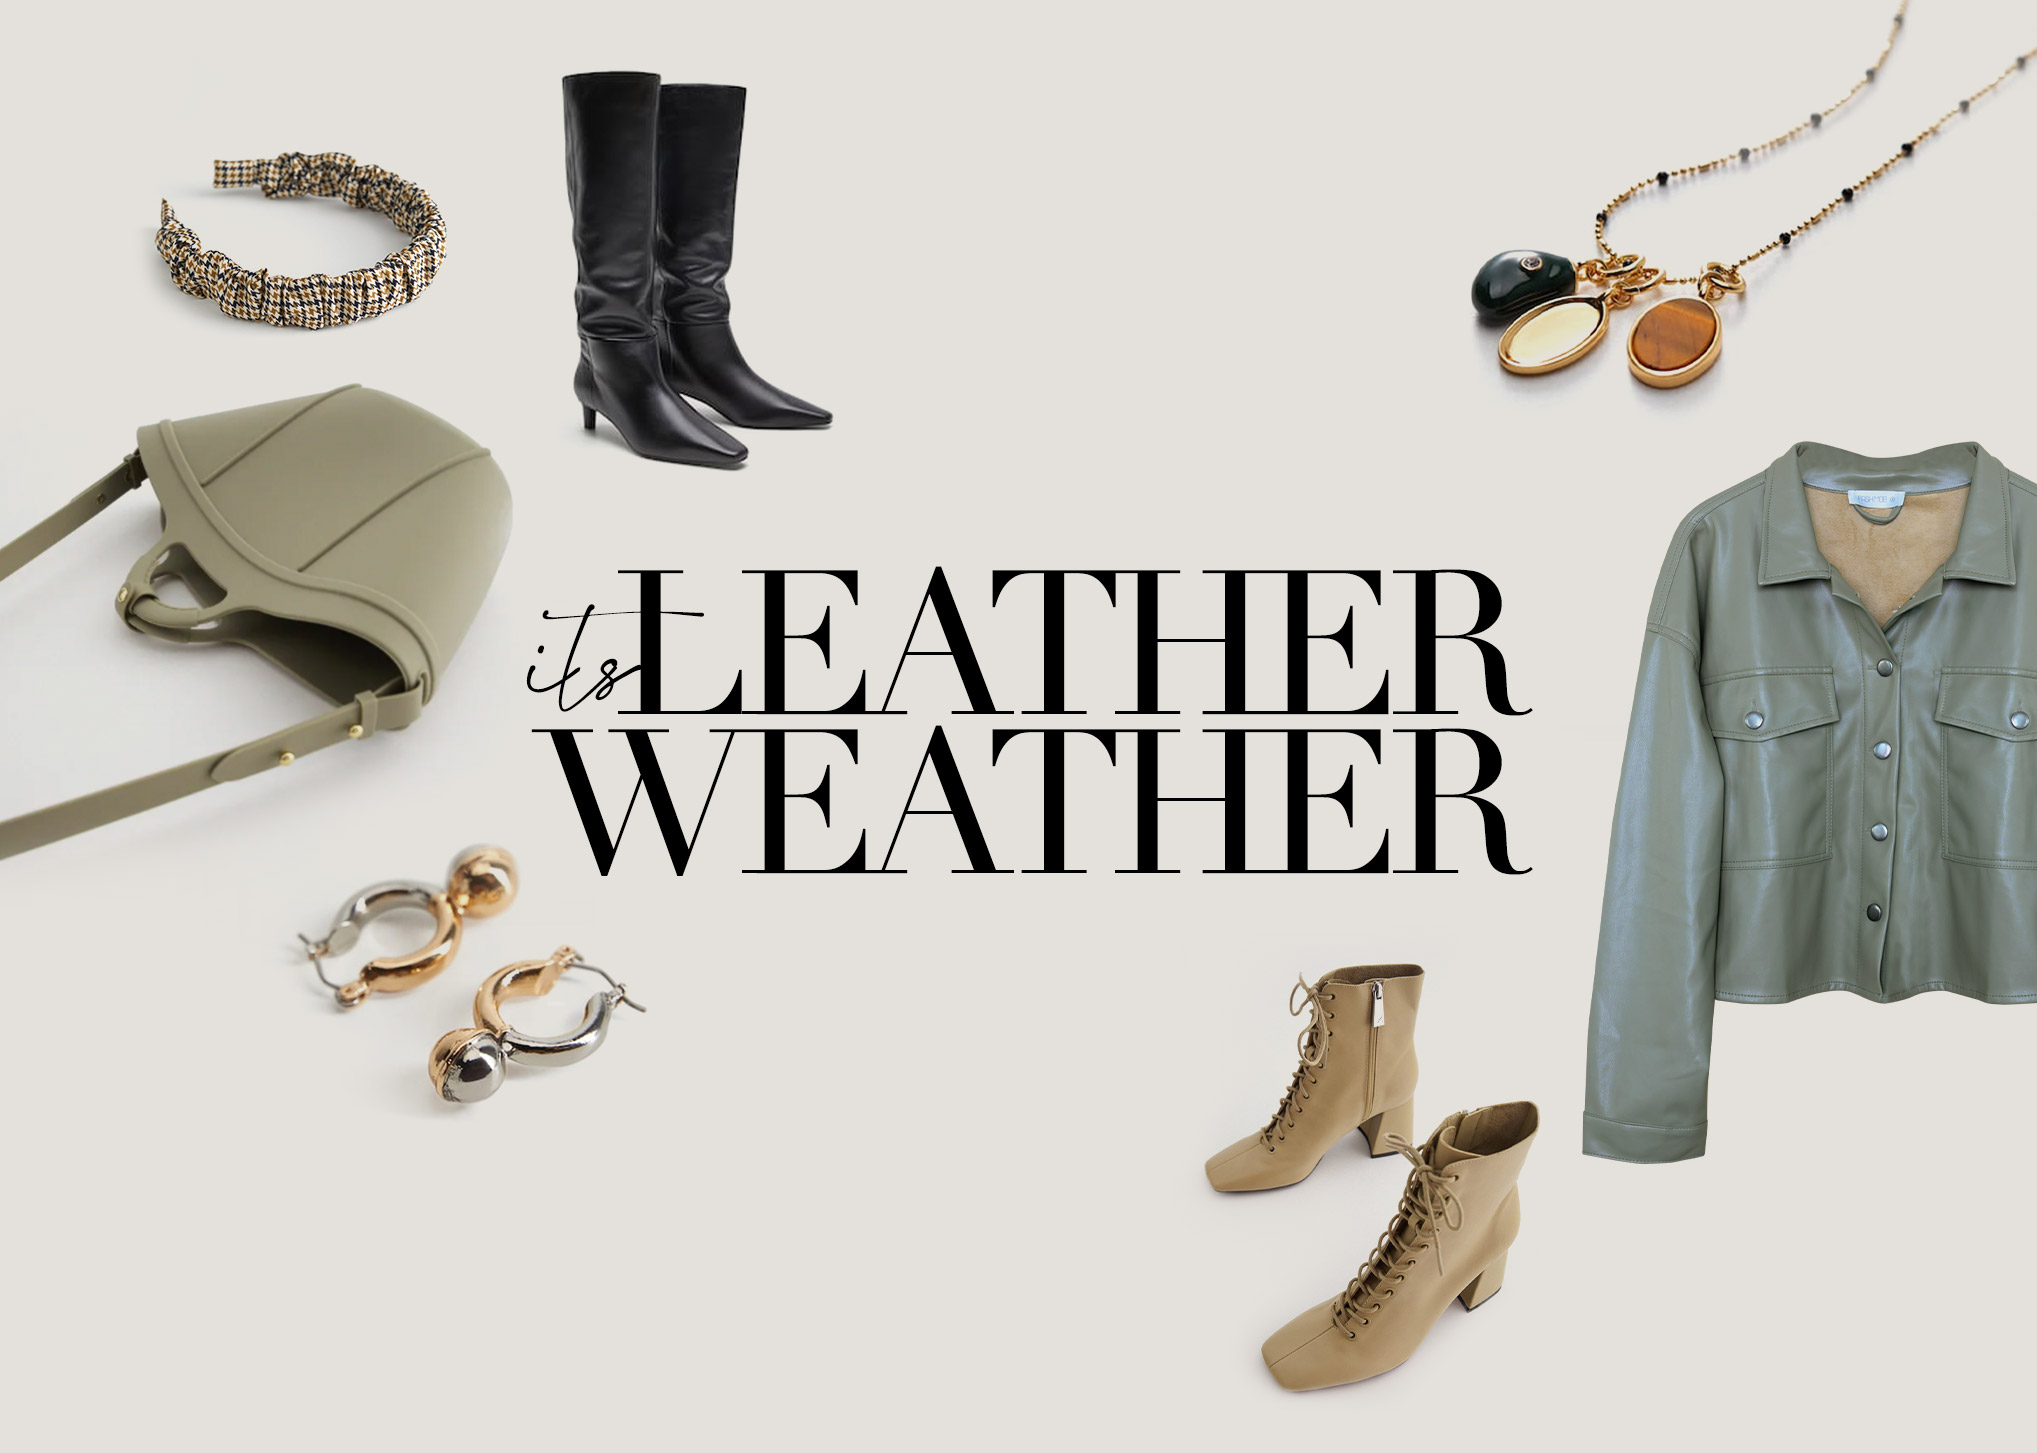 IT'S LEATHER WEATHER